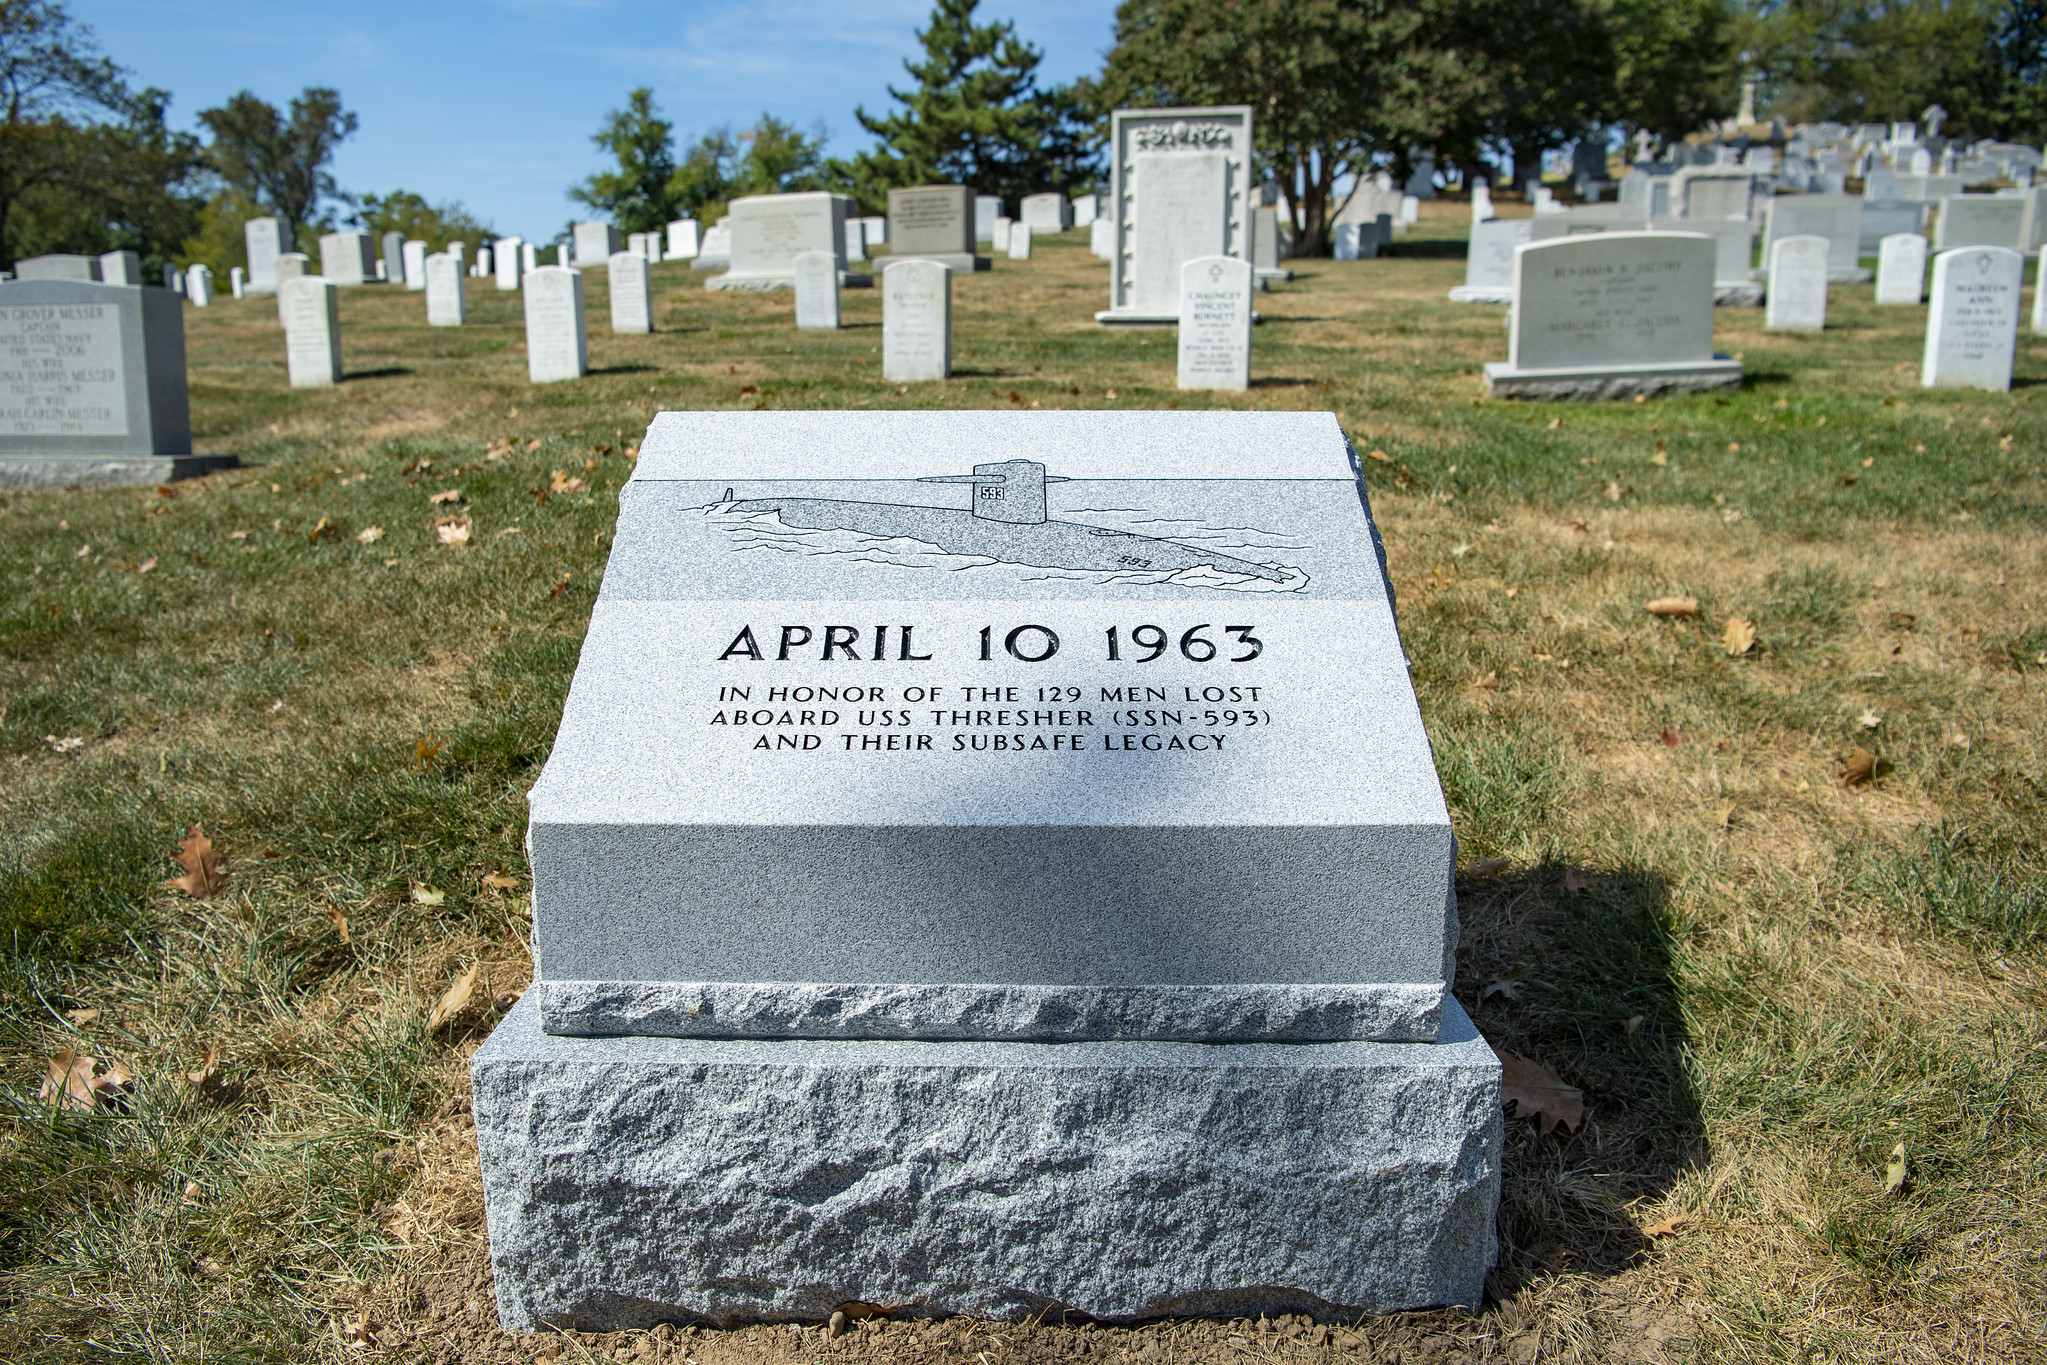 The USS Thresher Memorial, with inscription reading: April 10, 1963 - In honor of the 129 men lost aboard USS Thresher (SSN-593) and their subsafe legacy